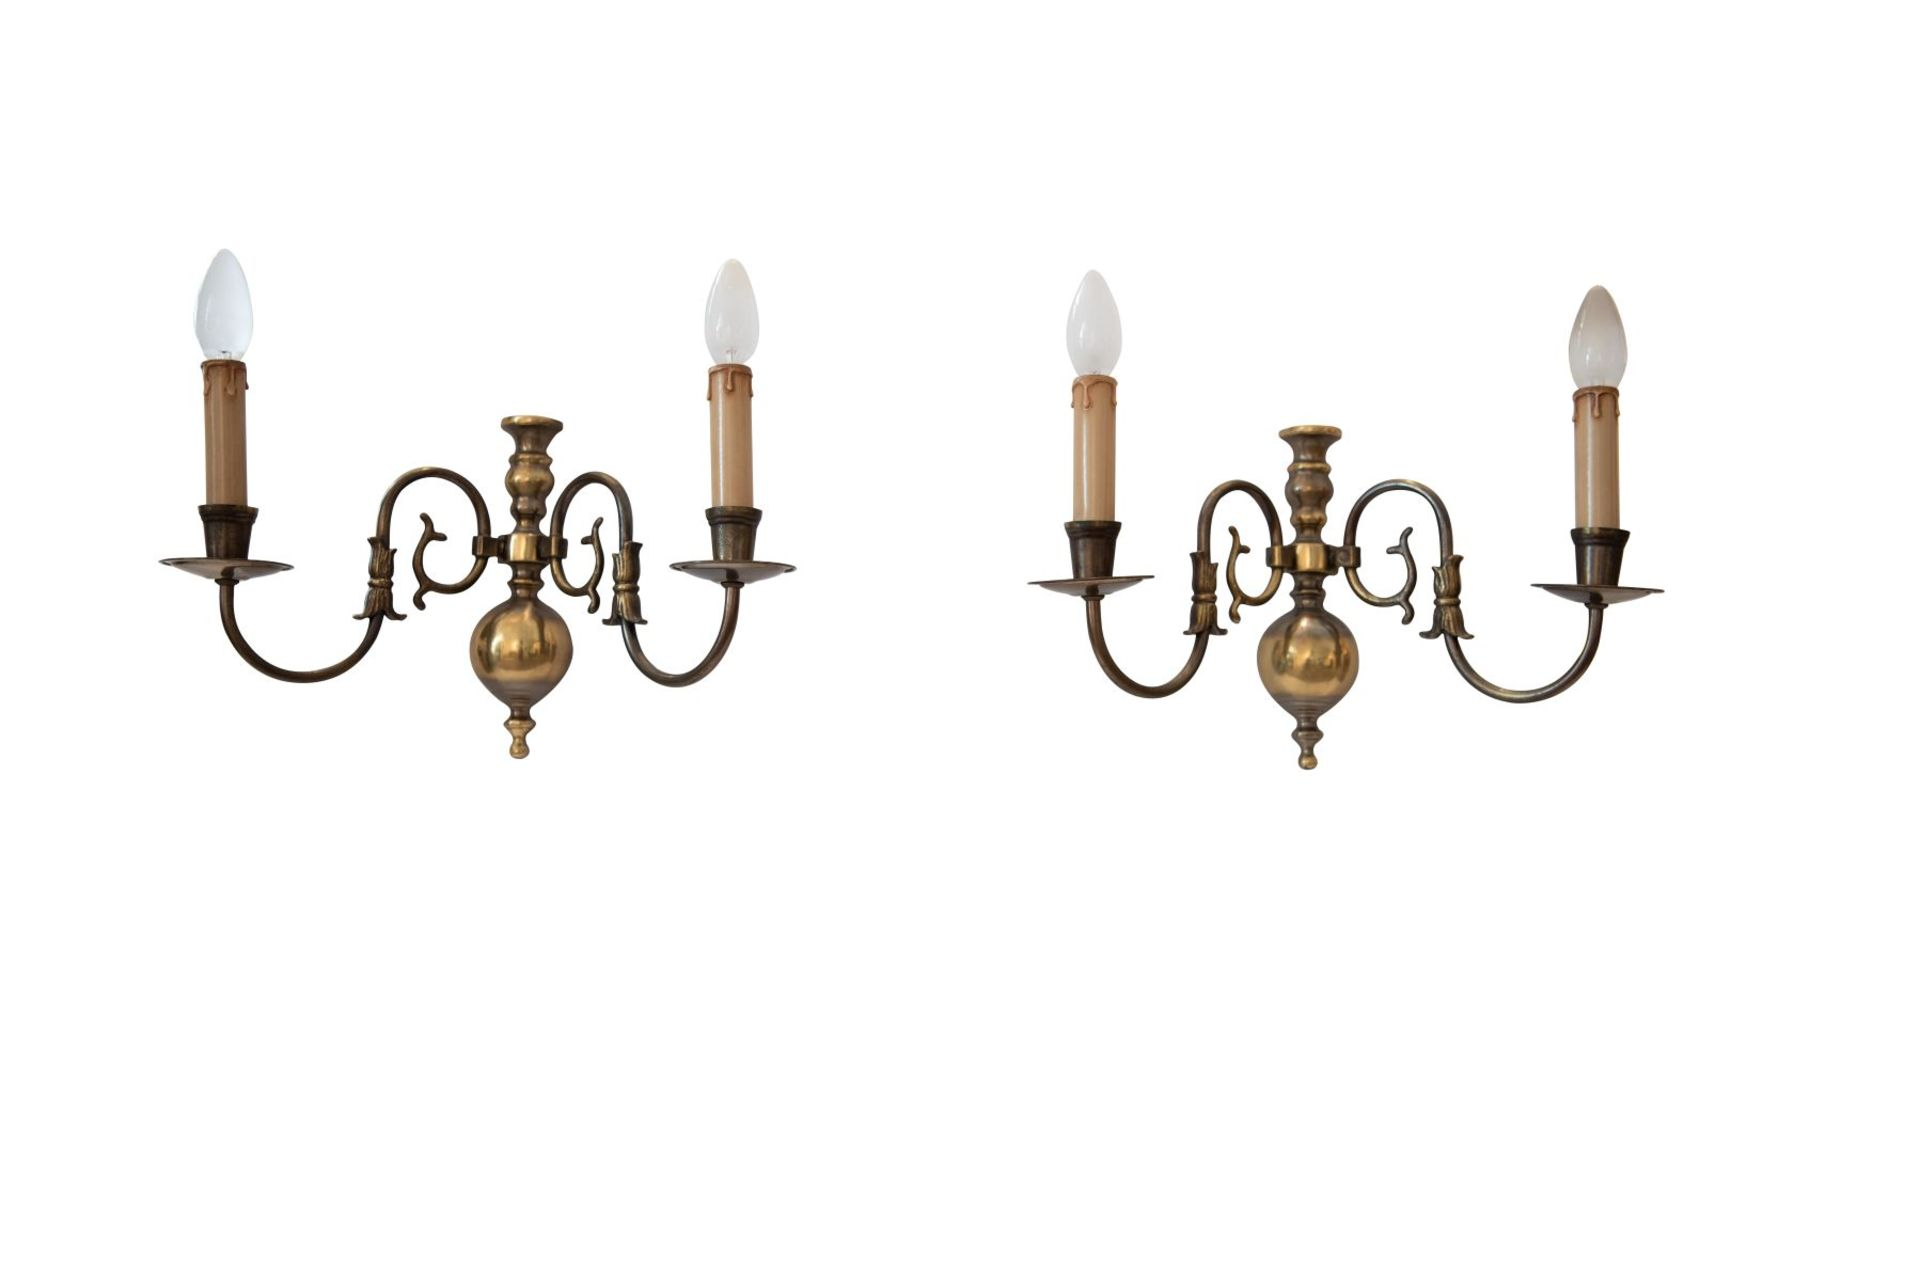 Salon chandelier and two wall appliques - Image 6 of 10